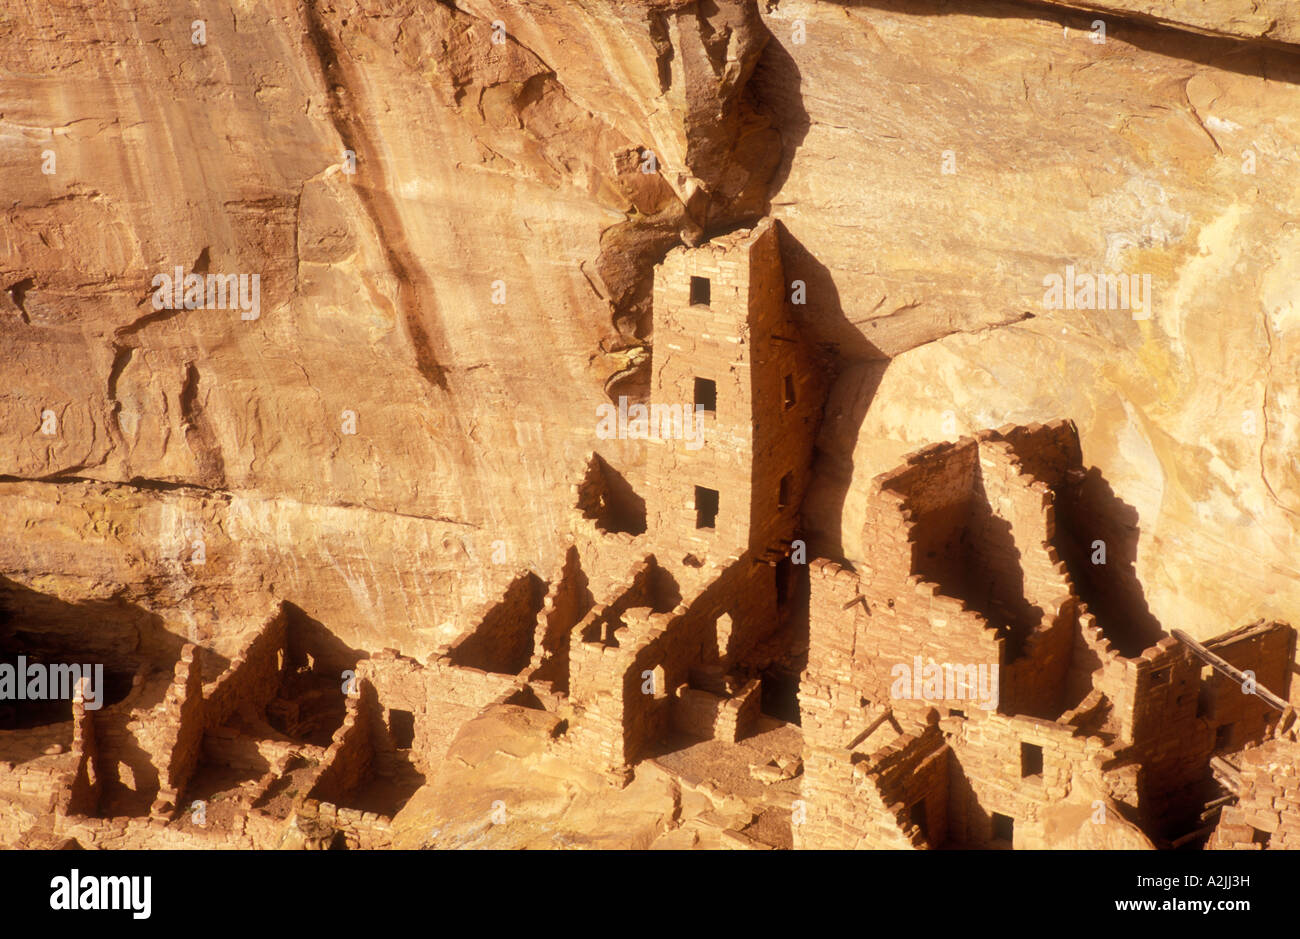 USA Colorado Mesa Verde National Park Square Tower House cliff dwellings of the Anasazi A D 1200 - Stock Image